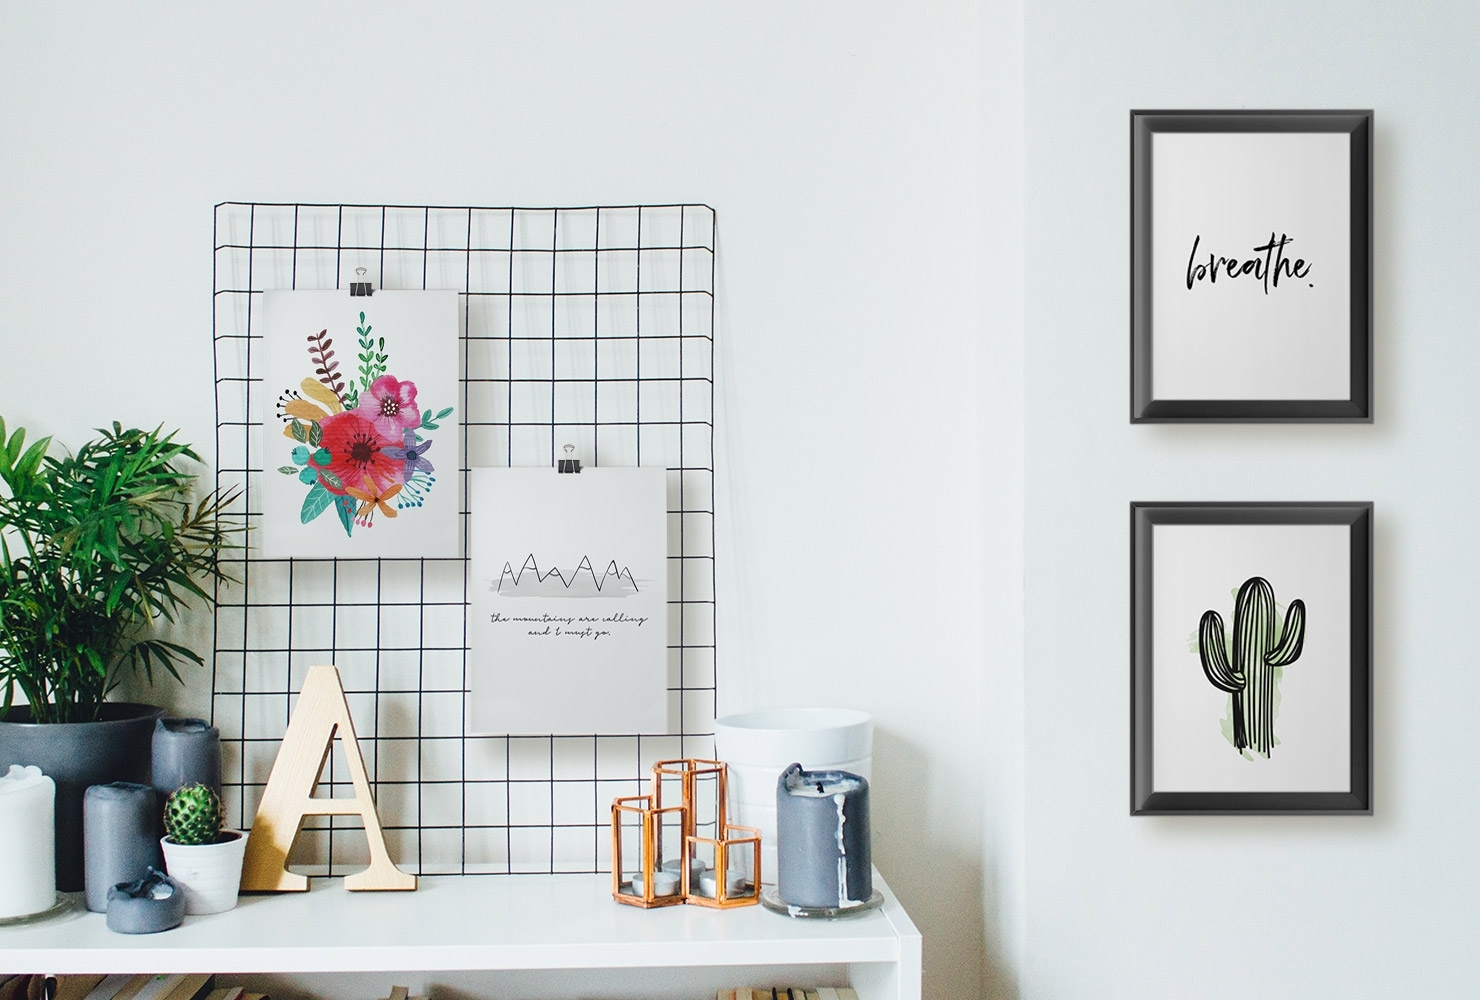 25 Unique Diy Wall Art Ideas (With Printables) | Shutterfly For Recent Wall Art Diy (View 3 of 20)